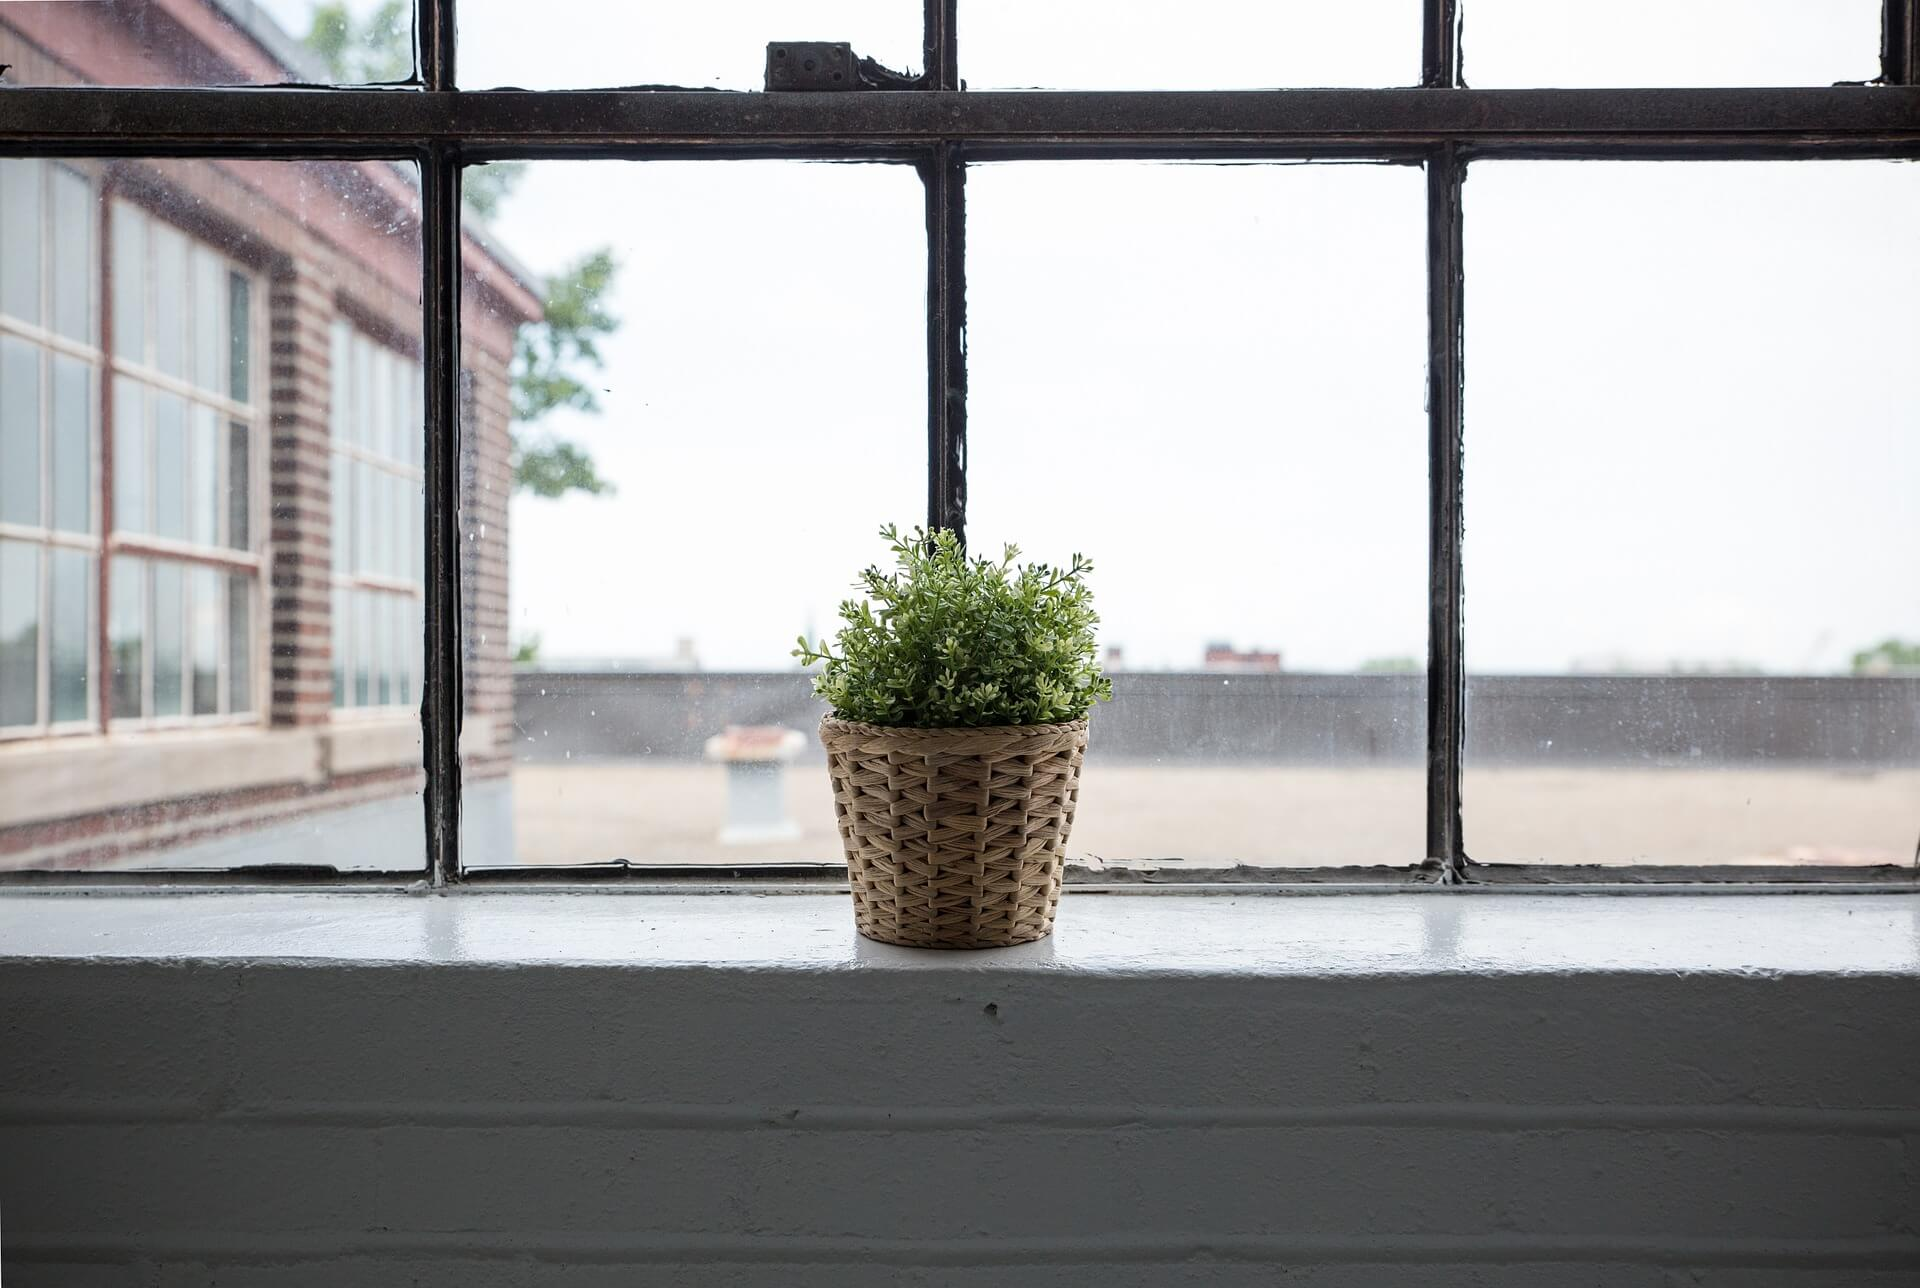 A photograph of a plant pot standing on a windowsill, lit by natural light. Out of the window the rest of the building is visible, as is a large playing field and fence.